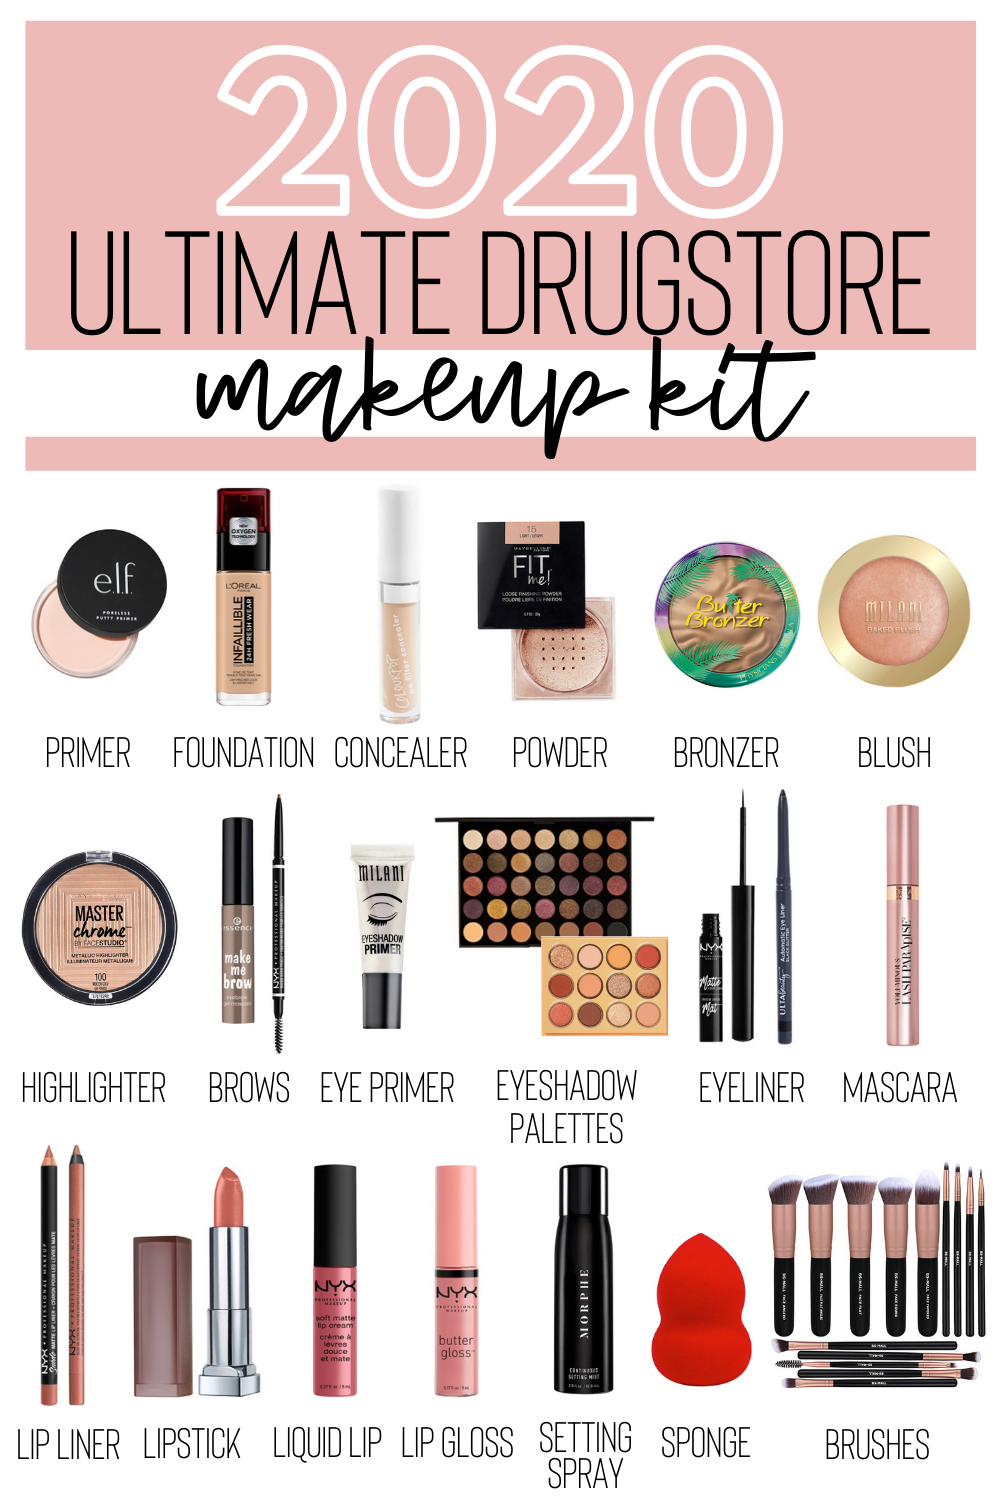 Looking for affordable makeup products that offer amazing quality? Check out this updated ultimate drugstore makeup kit for budget-friendly products to add to your routine.